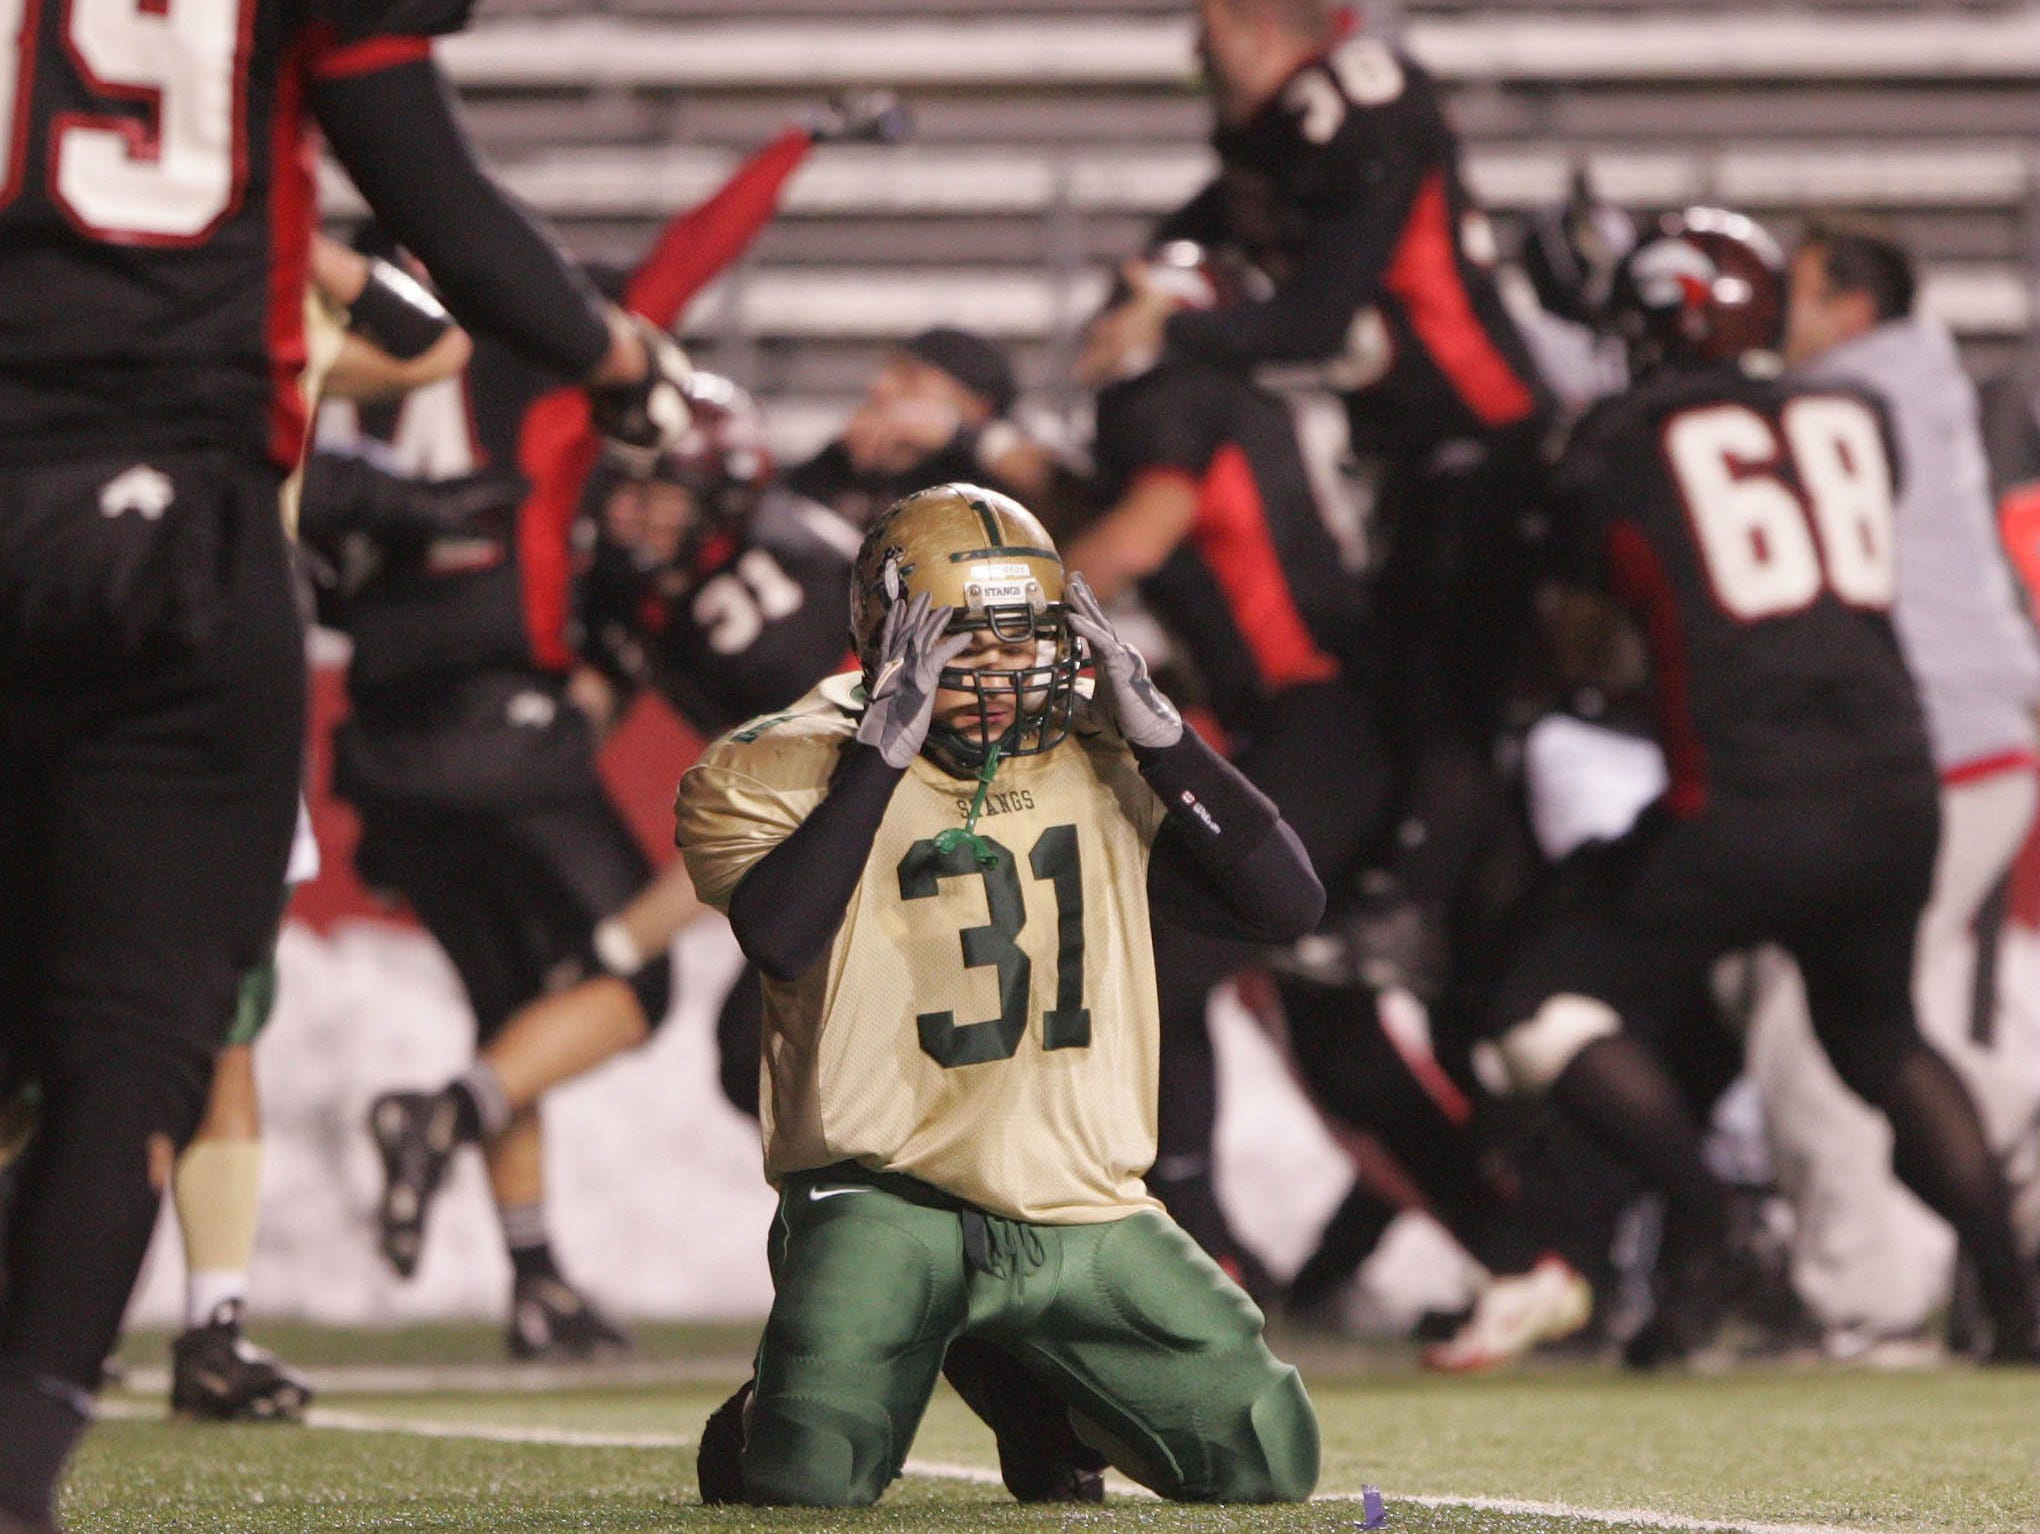 Brick Memorial's Daniel LaBrutto (31) reacts as Jackson celebrates their come-from-behind win in 2005.